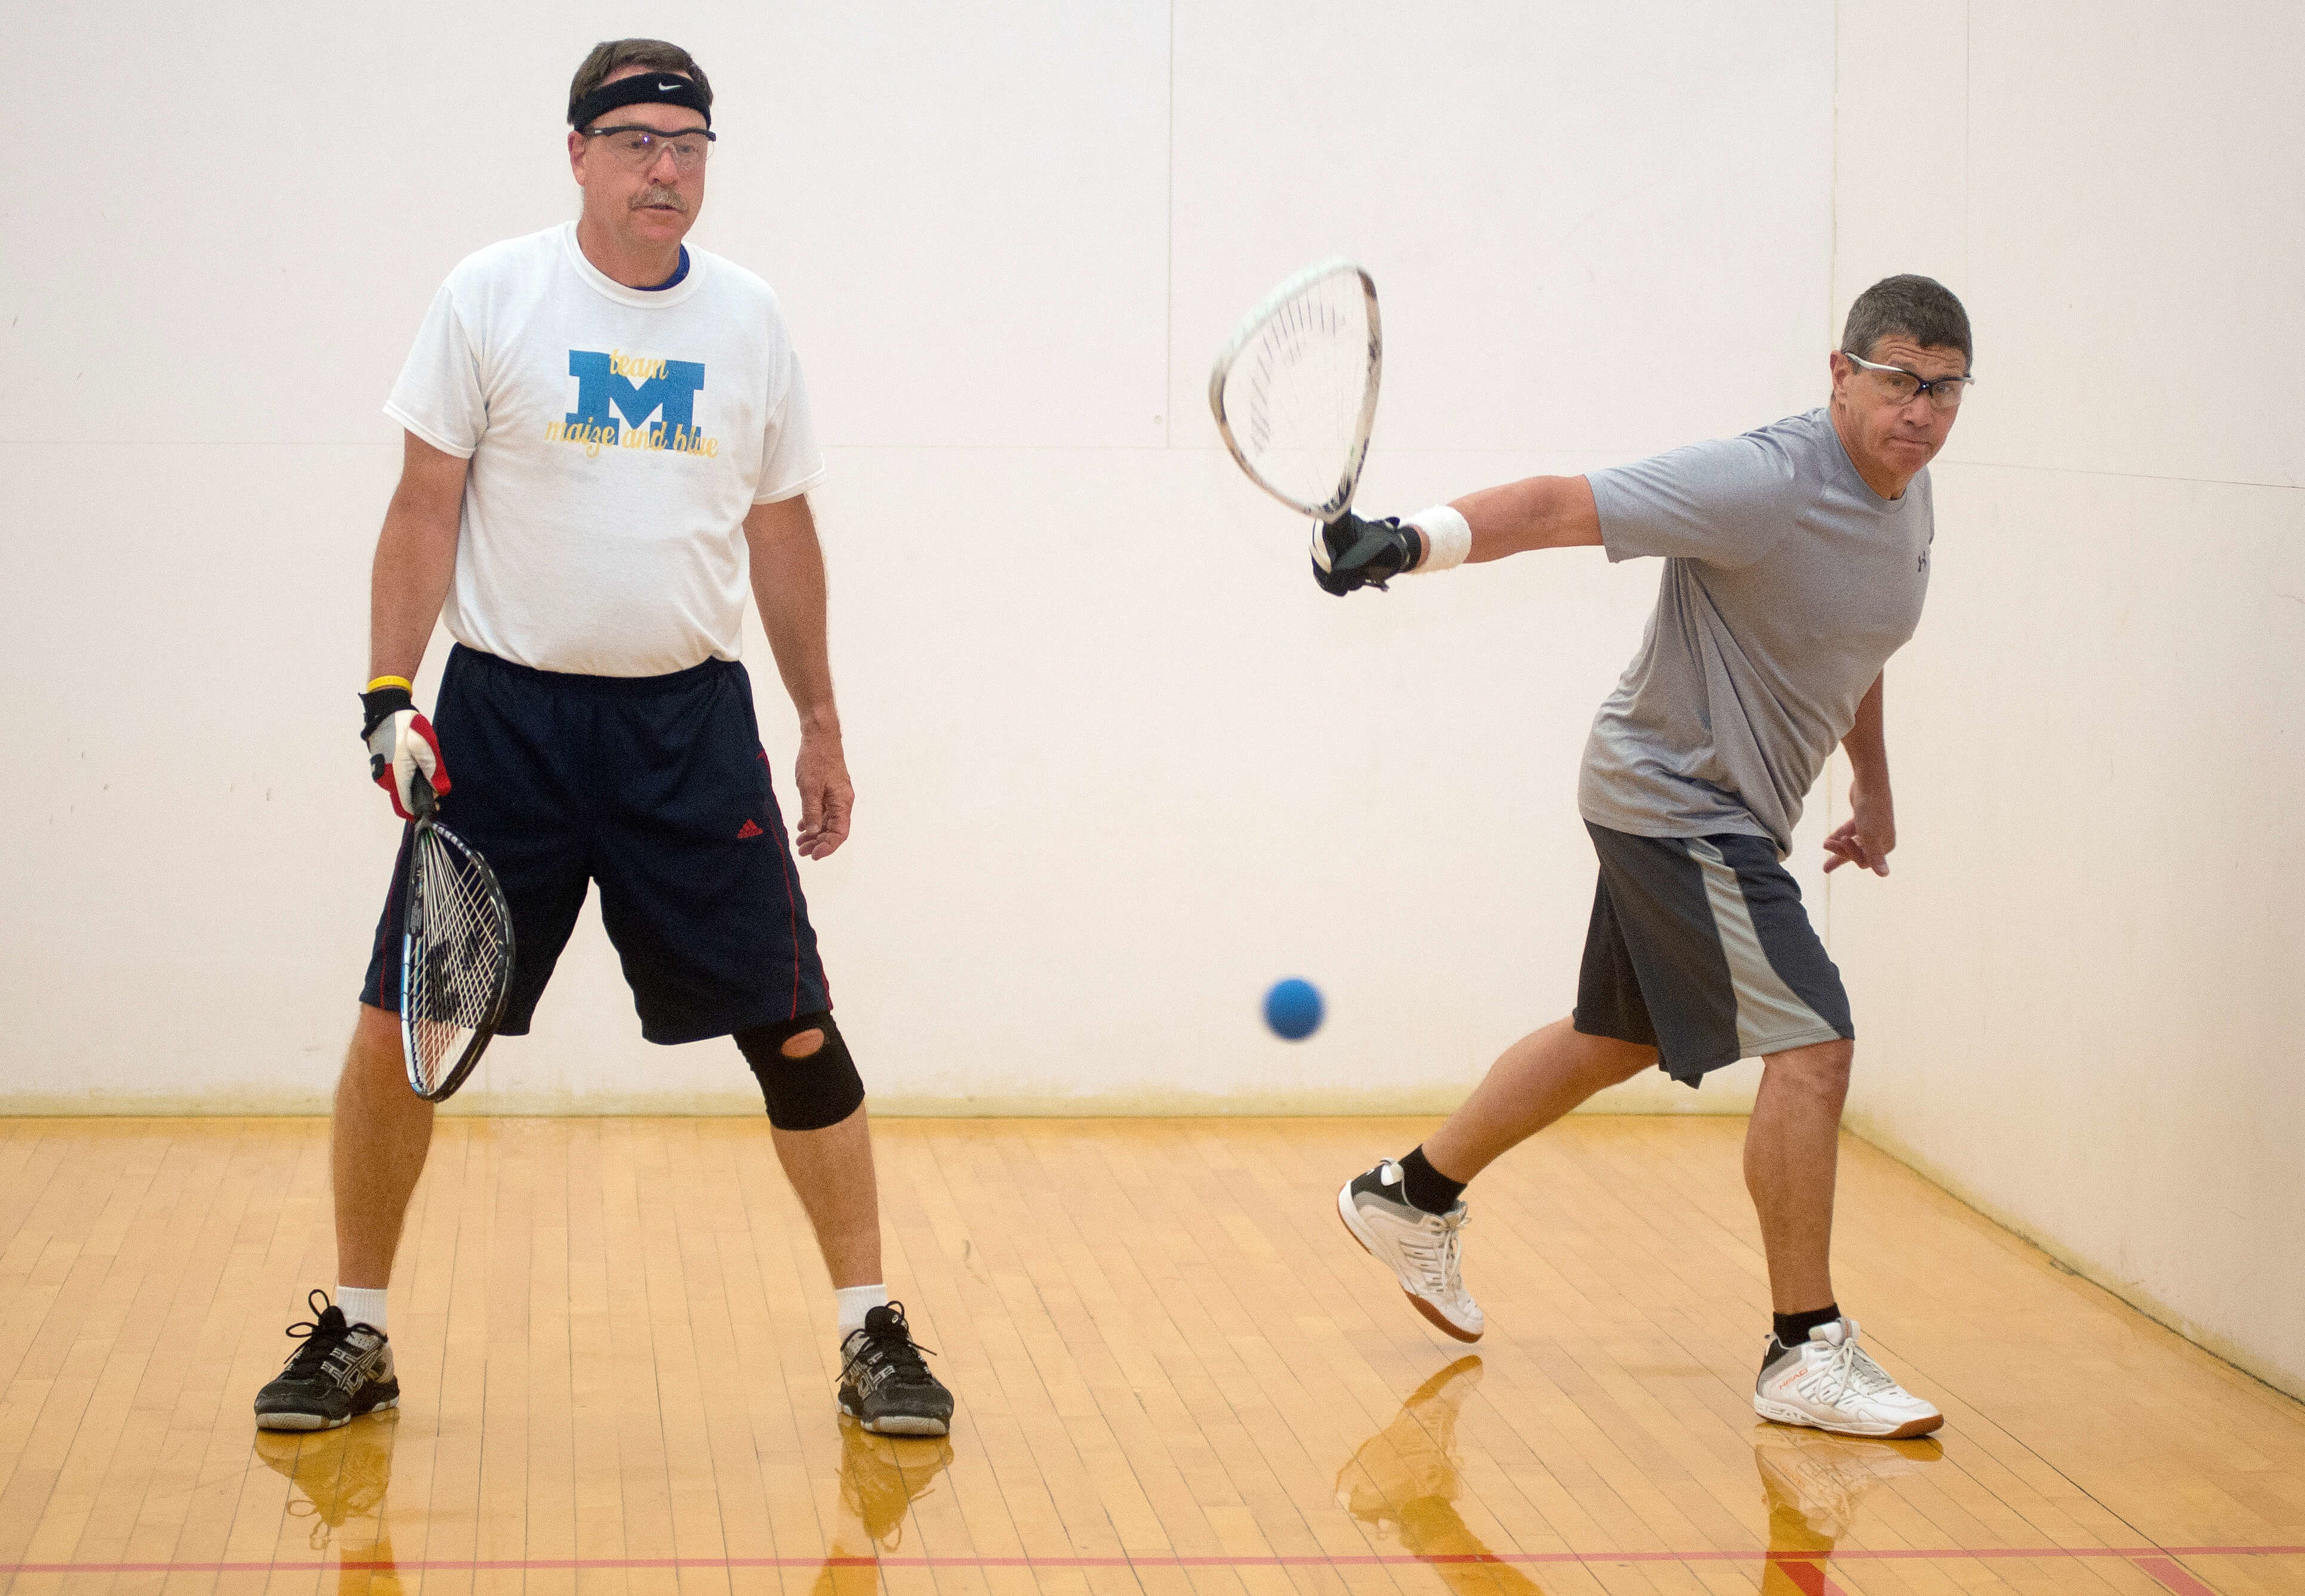 two men playing racquetball